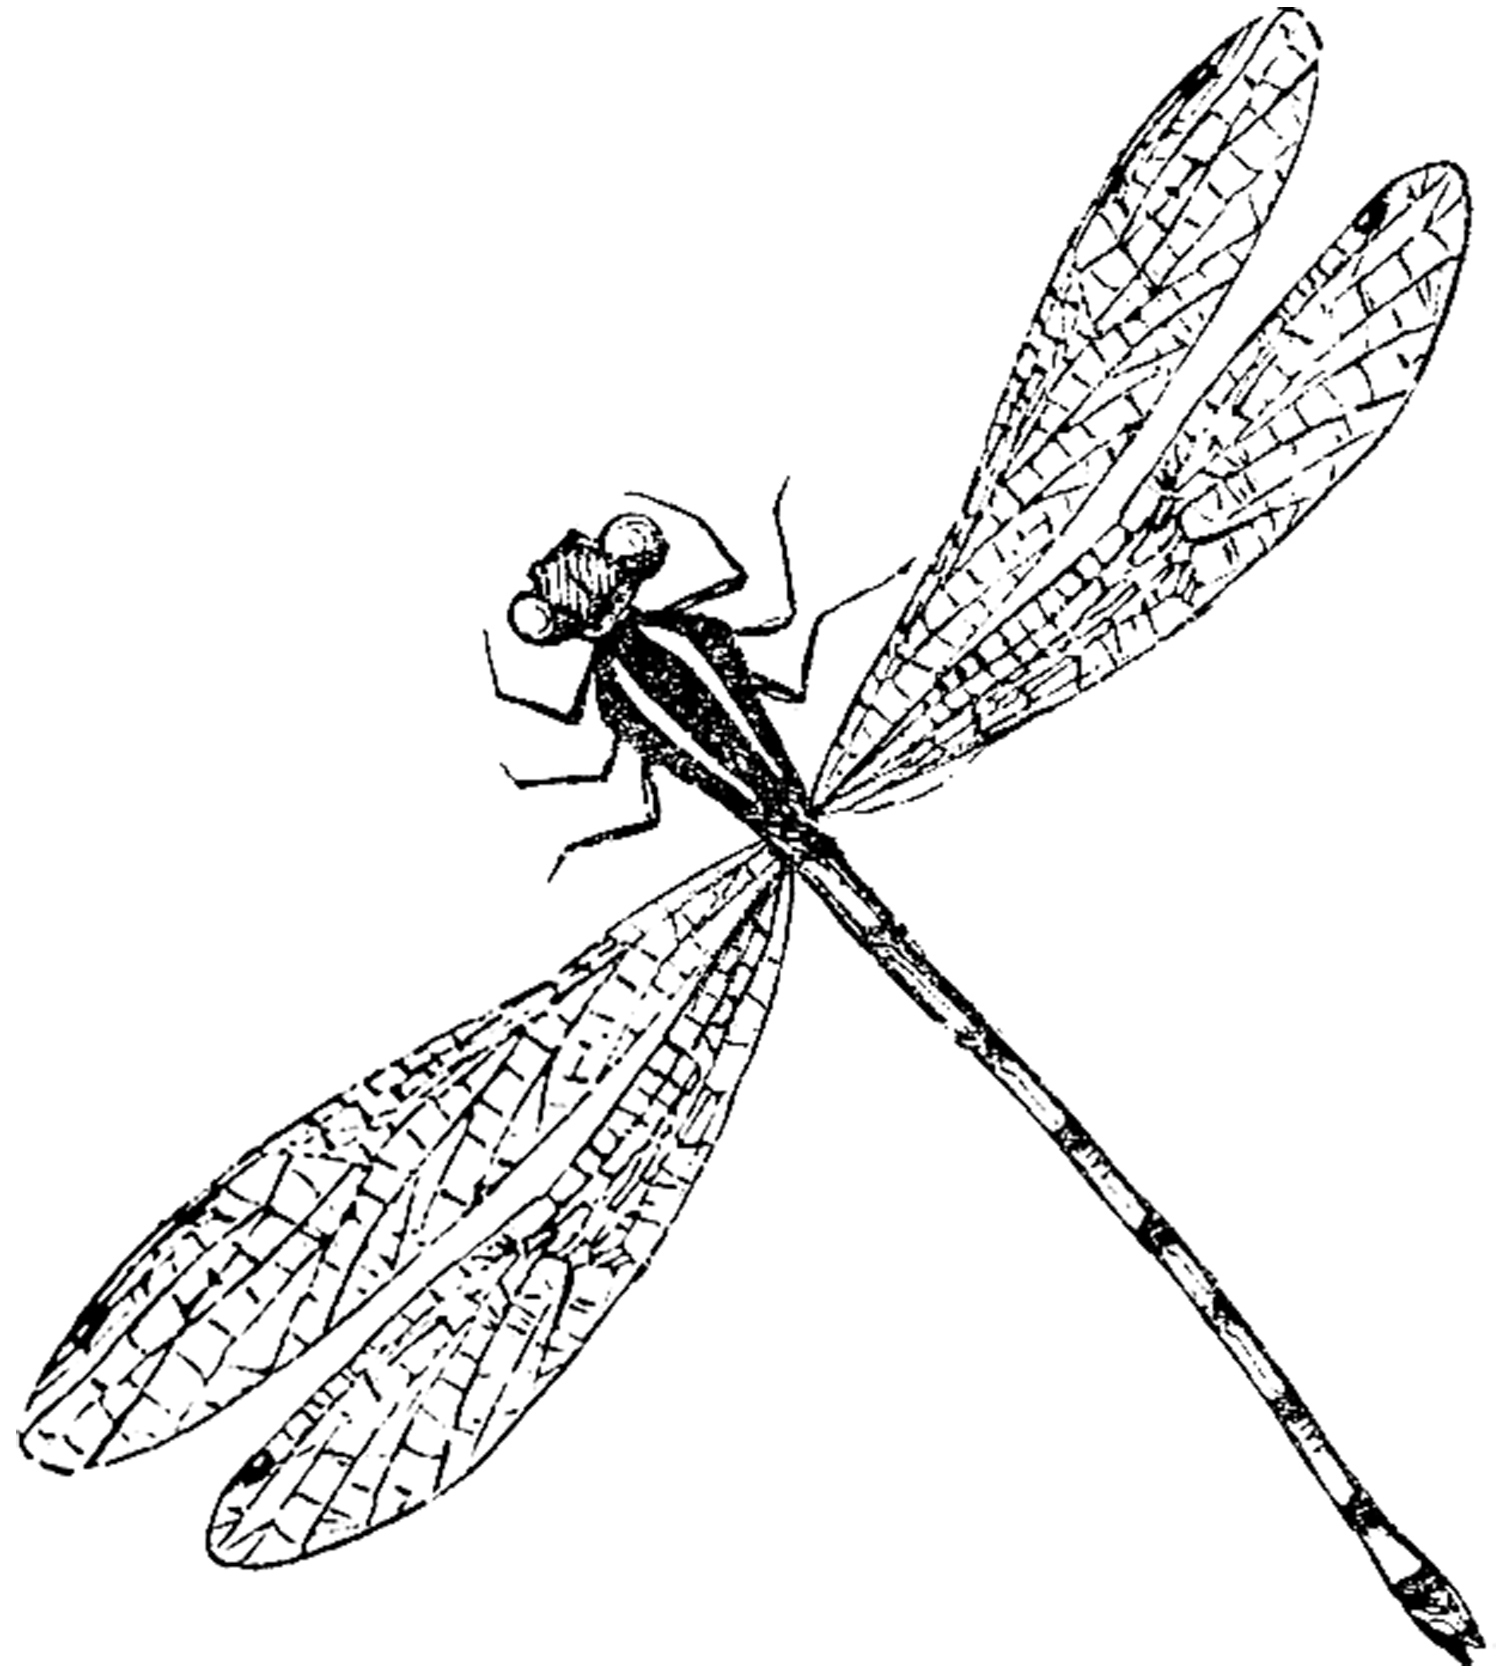 Free Drawings Of Dragonflies, Download Free Clip Art, Free Clip Art - Free Printable Pictures Of Dragonflies